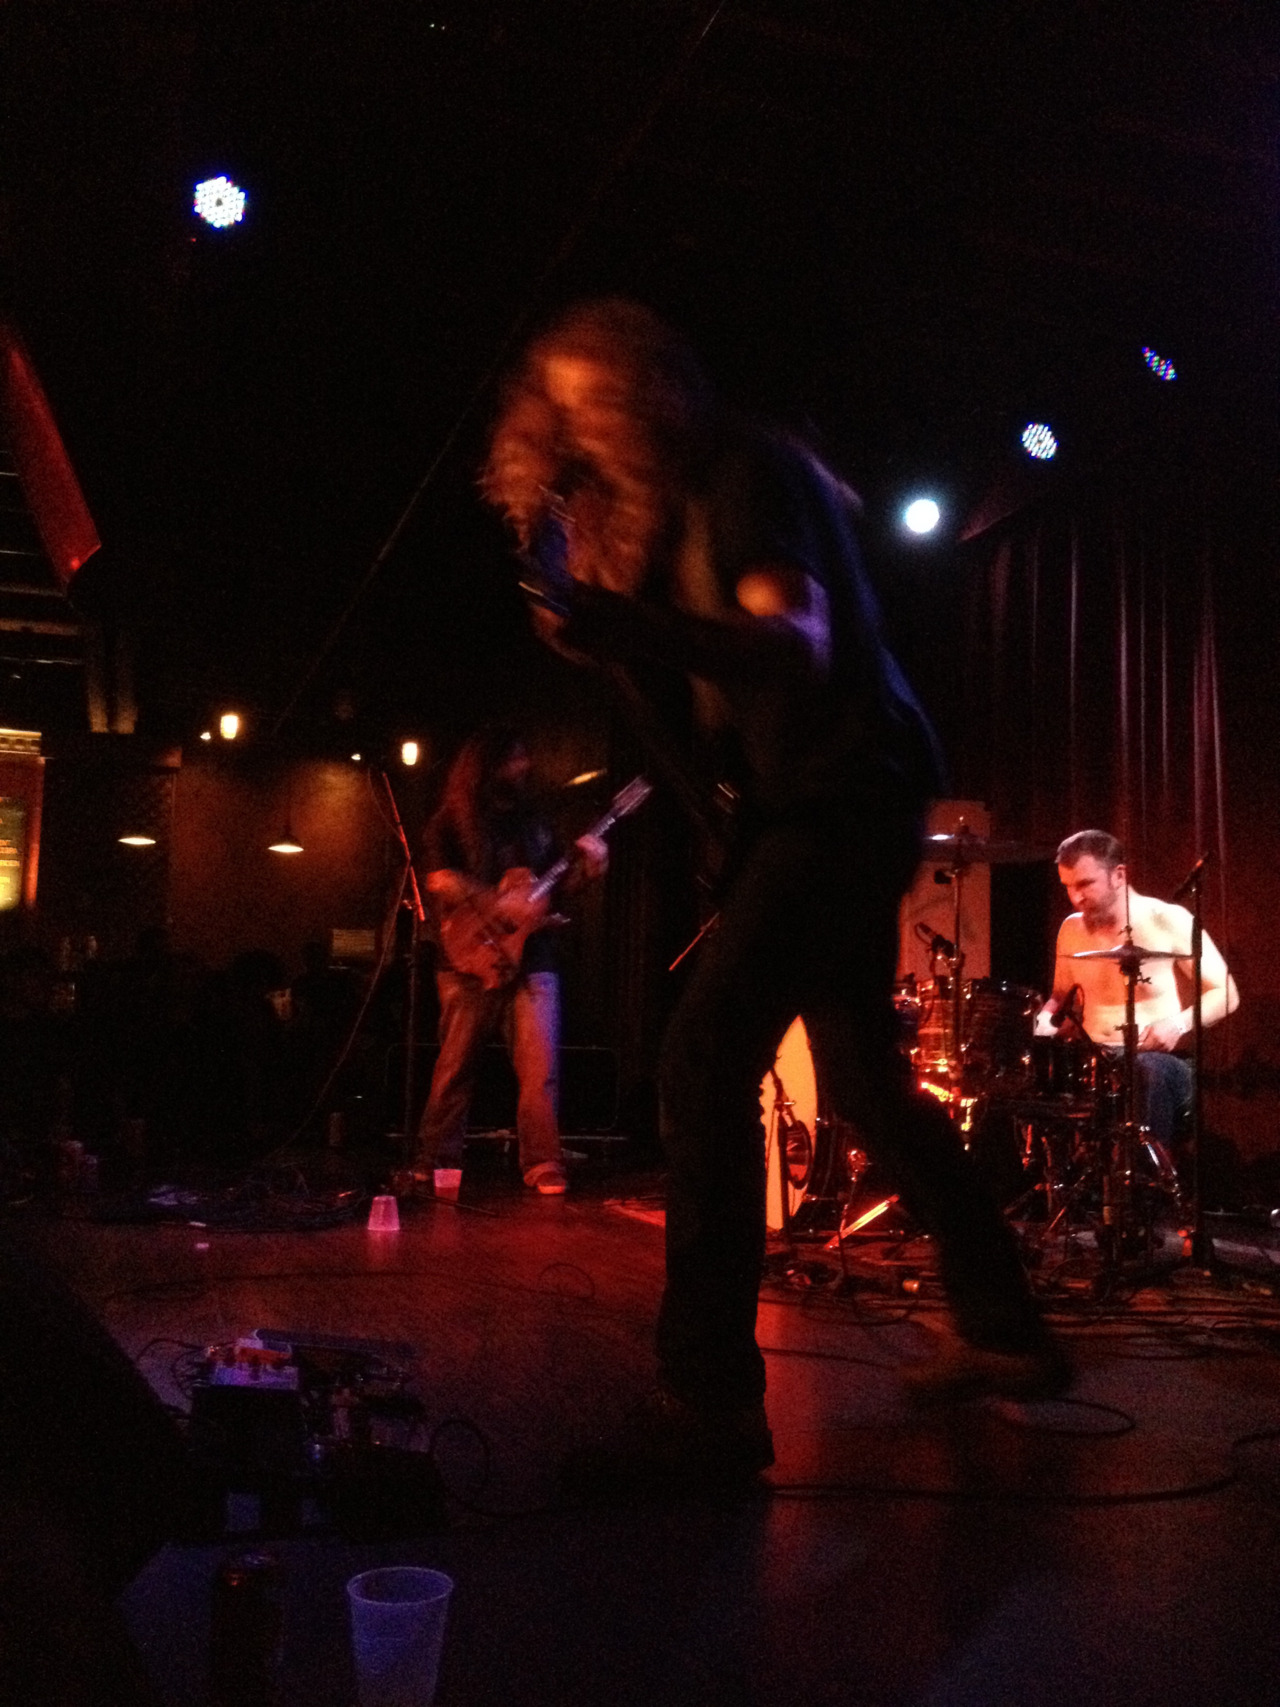 I saw YOB last night at the Bell House and it was incredible. It wasn't a huge crowd, which made for an intimate audience. I didn't get a chance to stay for the whole set, but I walked away with their live at Roadburn LP. Great vocals, excellent musicianship, and an awesome crowd. A+.